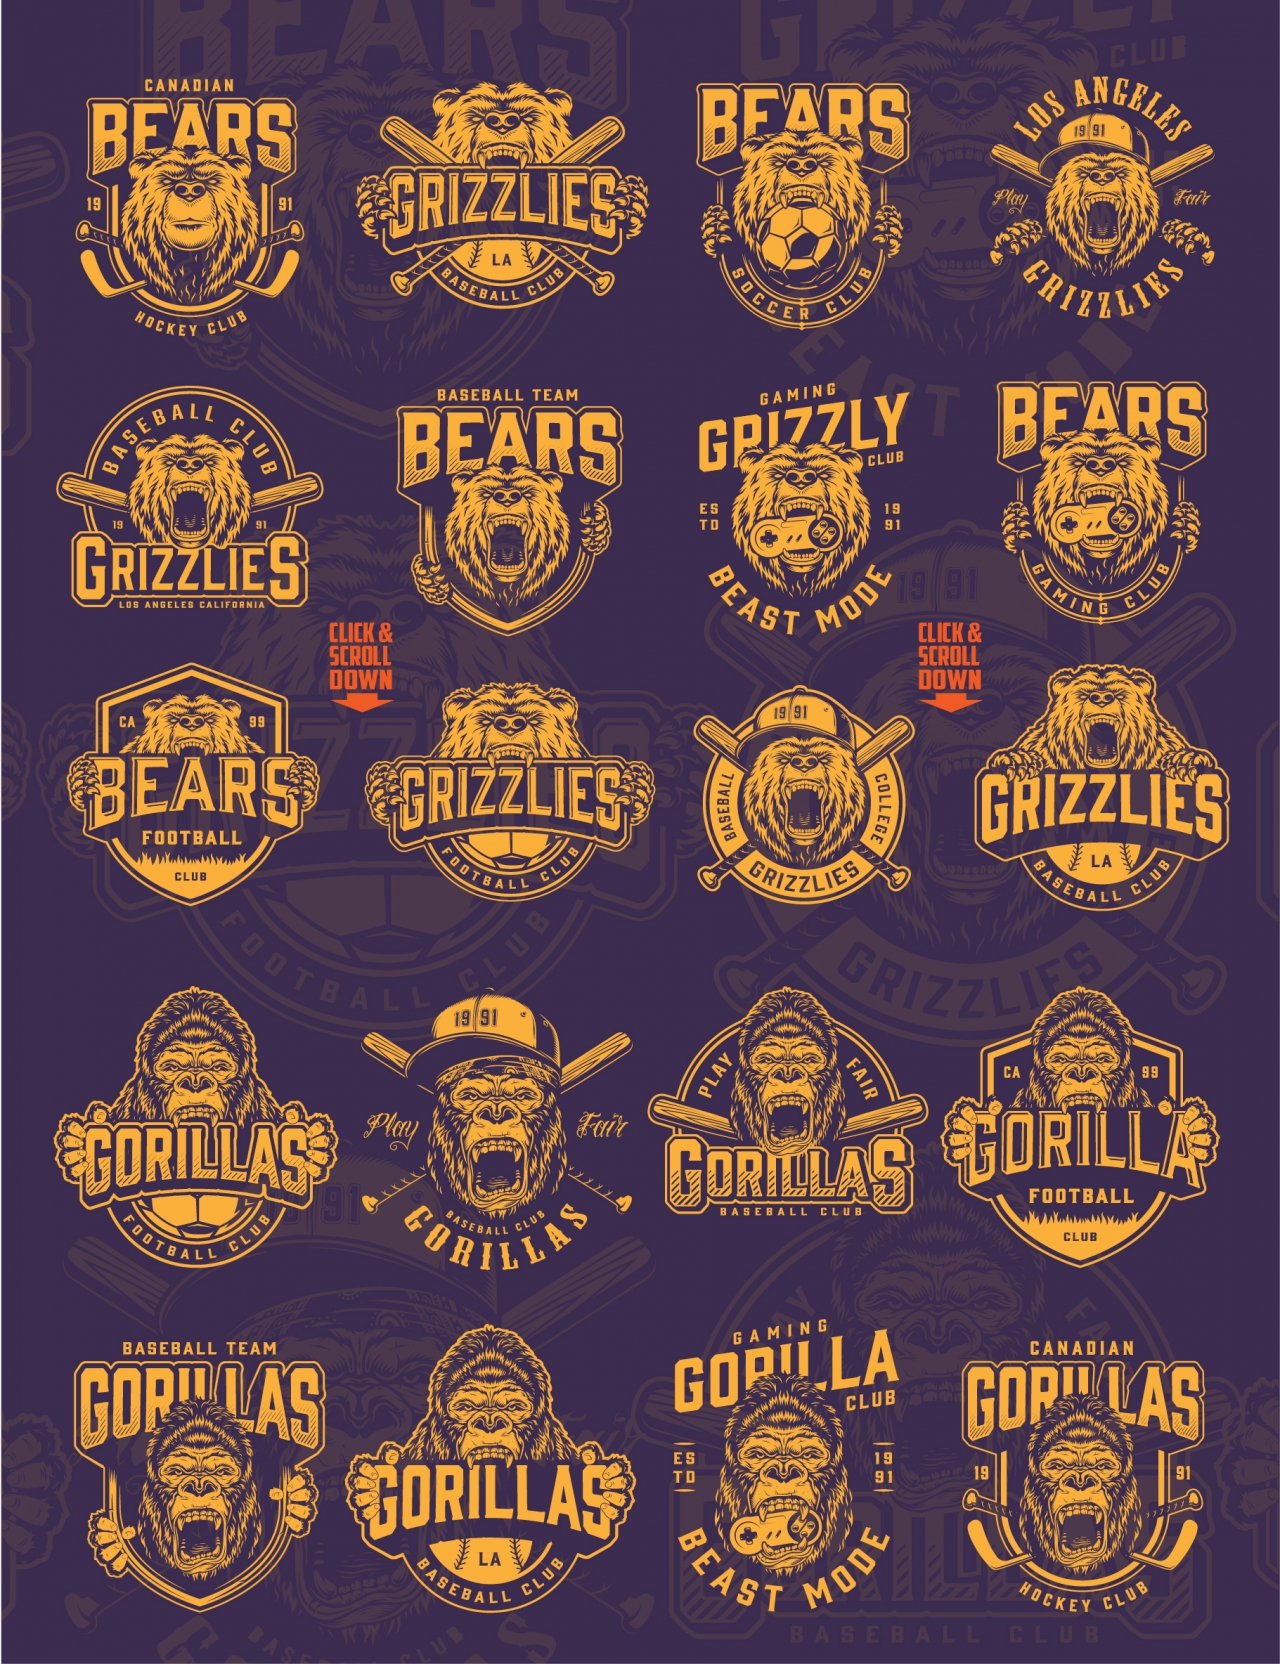 Old school style sporting prints collection with different emblems and labels for baseball, hockey, soccer and gaming clubs